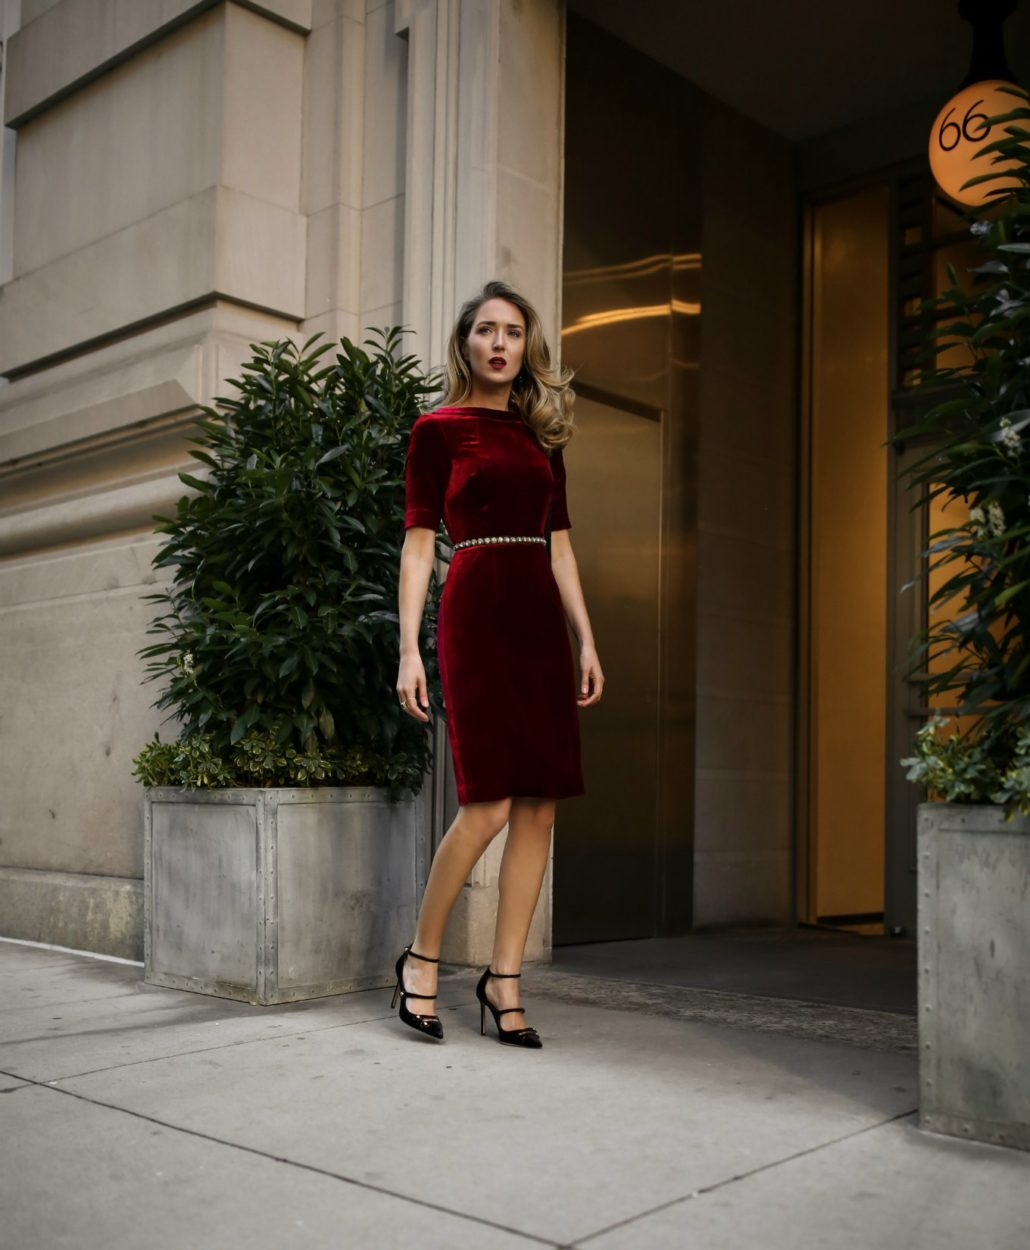 red-velvet-sheath-dress-classic-style-holiday-christmas-party-work-office-cocktail-attire5-1030x1250.jpg